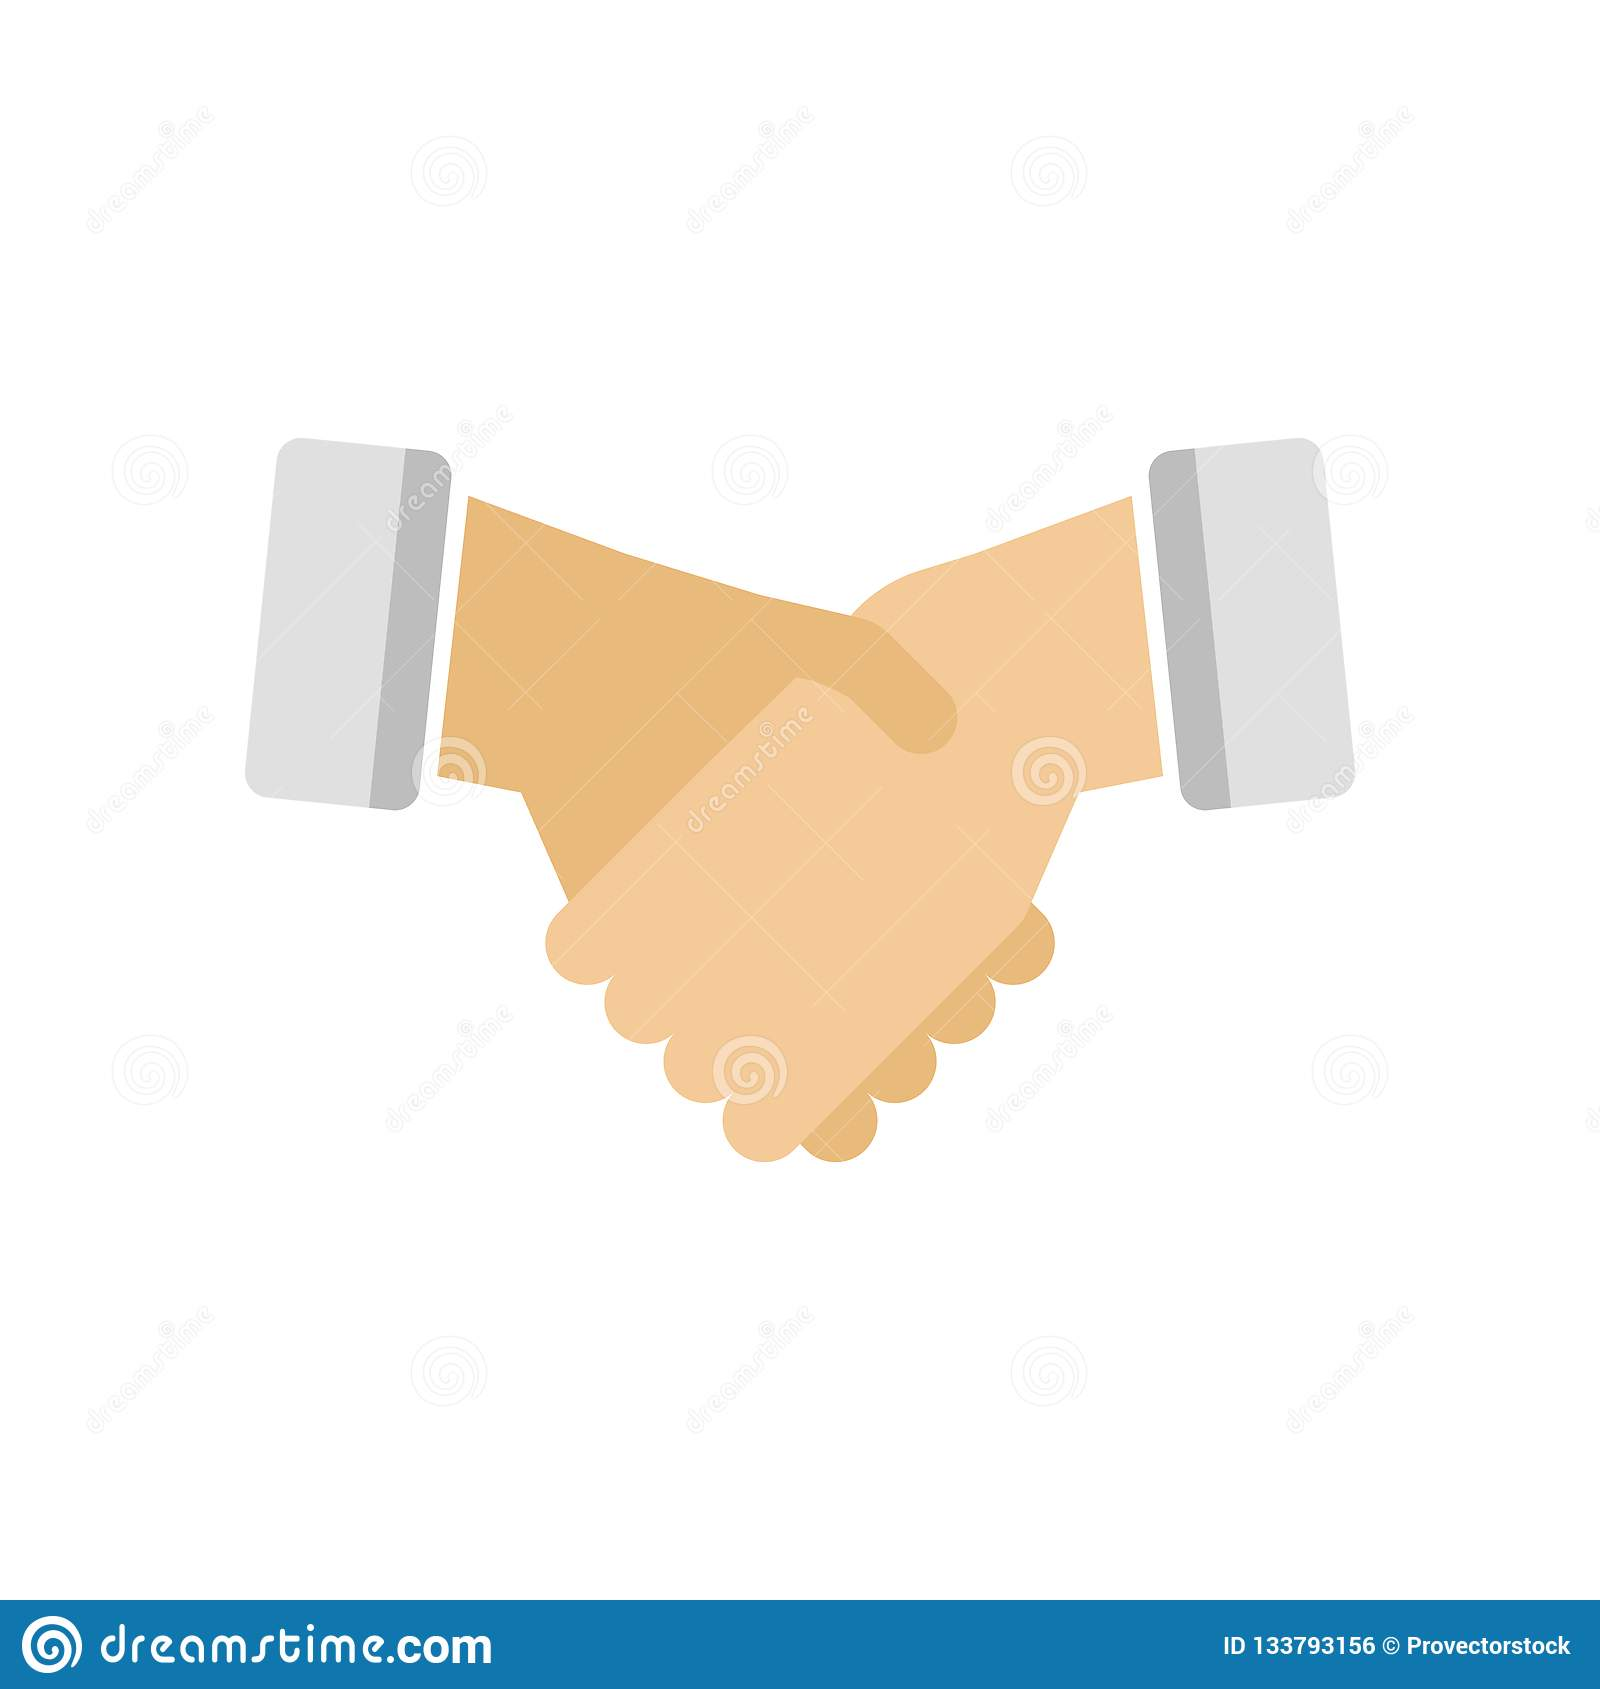 Agreement icon vector sign and symbol isolated on white background, Agreement logo concept